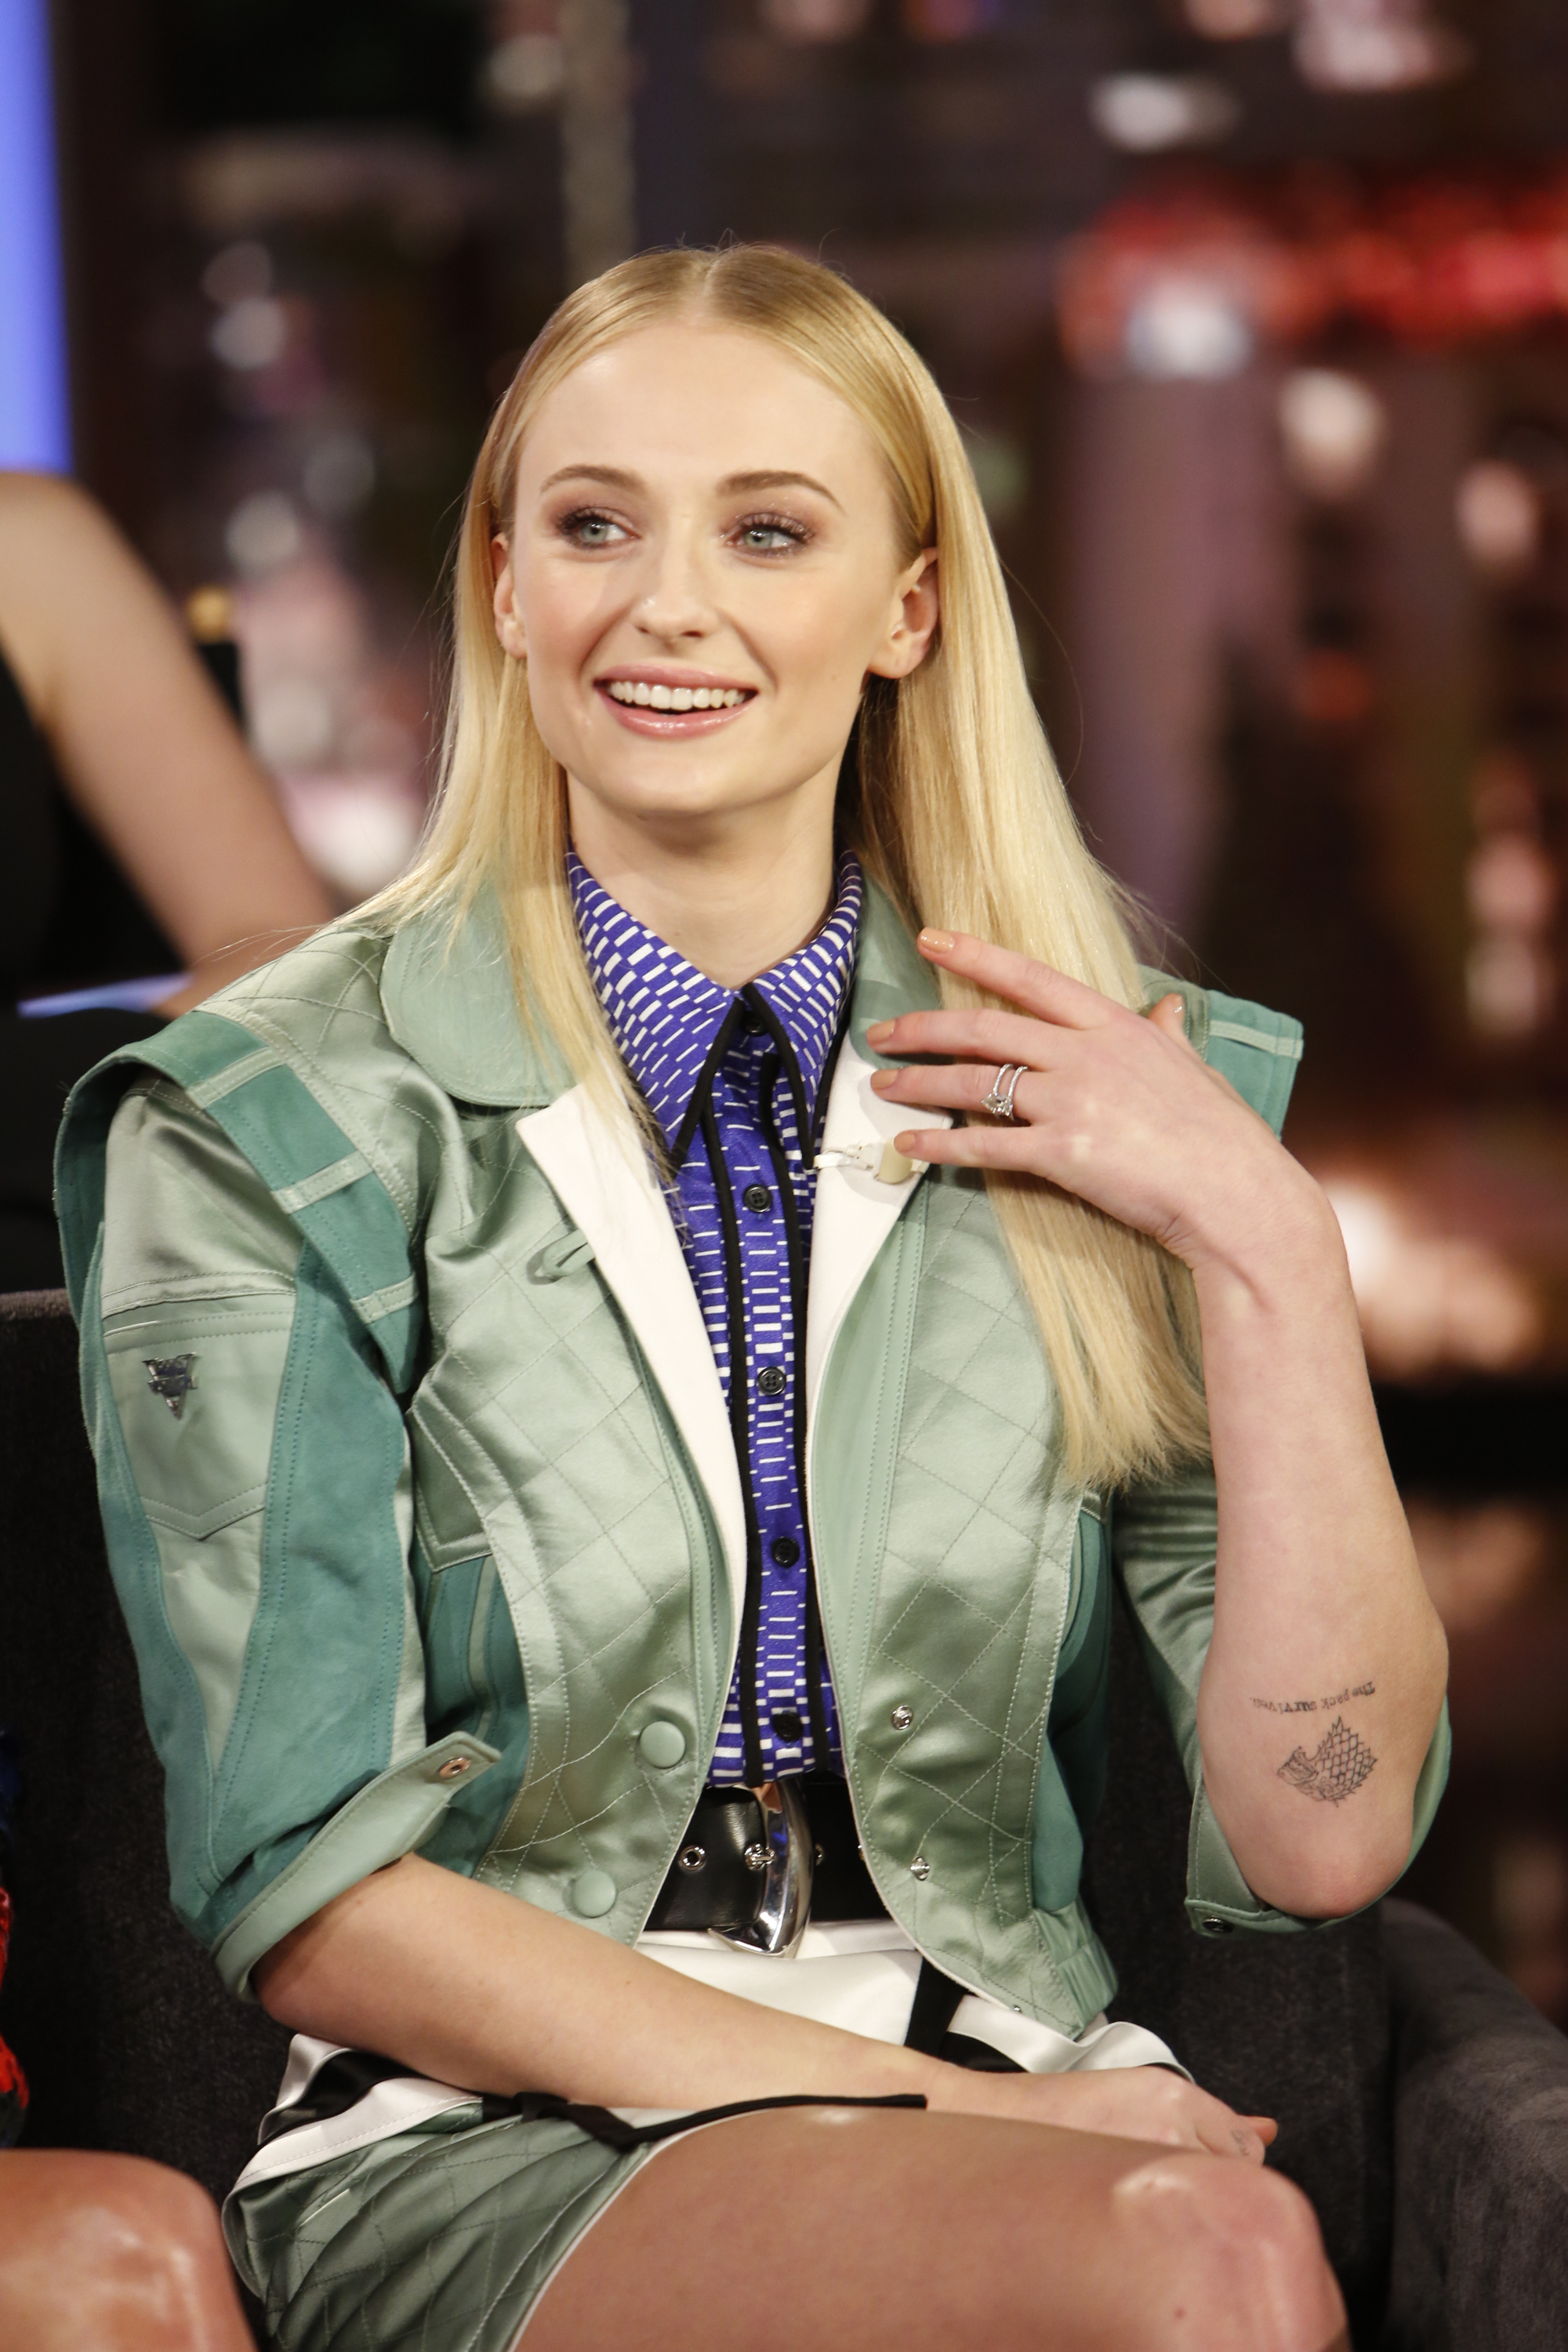 """JIMMY KIMMEL LIVE! - """"Jimmy Kimmel Live!"""" airs every weeknight at 11:35 p.m. EDT and features a diverse lineup of guests that include celebrities, athletes, musical acts, comedians and human interest subjects, along with comedy bits and a house band. The guests for Tuesday, June 4, included Sophie Turner, James McAvoy, Jennifer Lawrence, Michael Fassbender, Jessica Chastain, Nicholas Hoult, Tye Sheridan (""""Dark Phoenix""""), Unified World Heavyweight Champion Boxer Andy Ruiz Jr., and musical guest Aloe Blacc. (Randy Holmes via Getty Images) SOPHIE TURNER"""